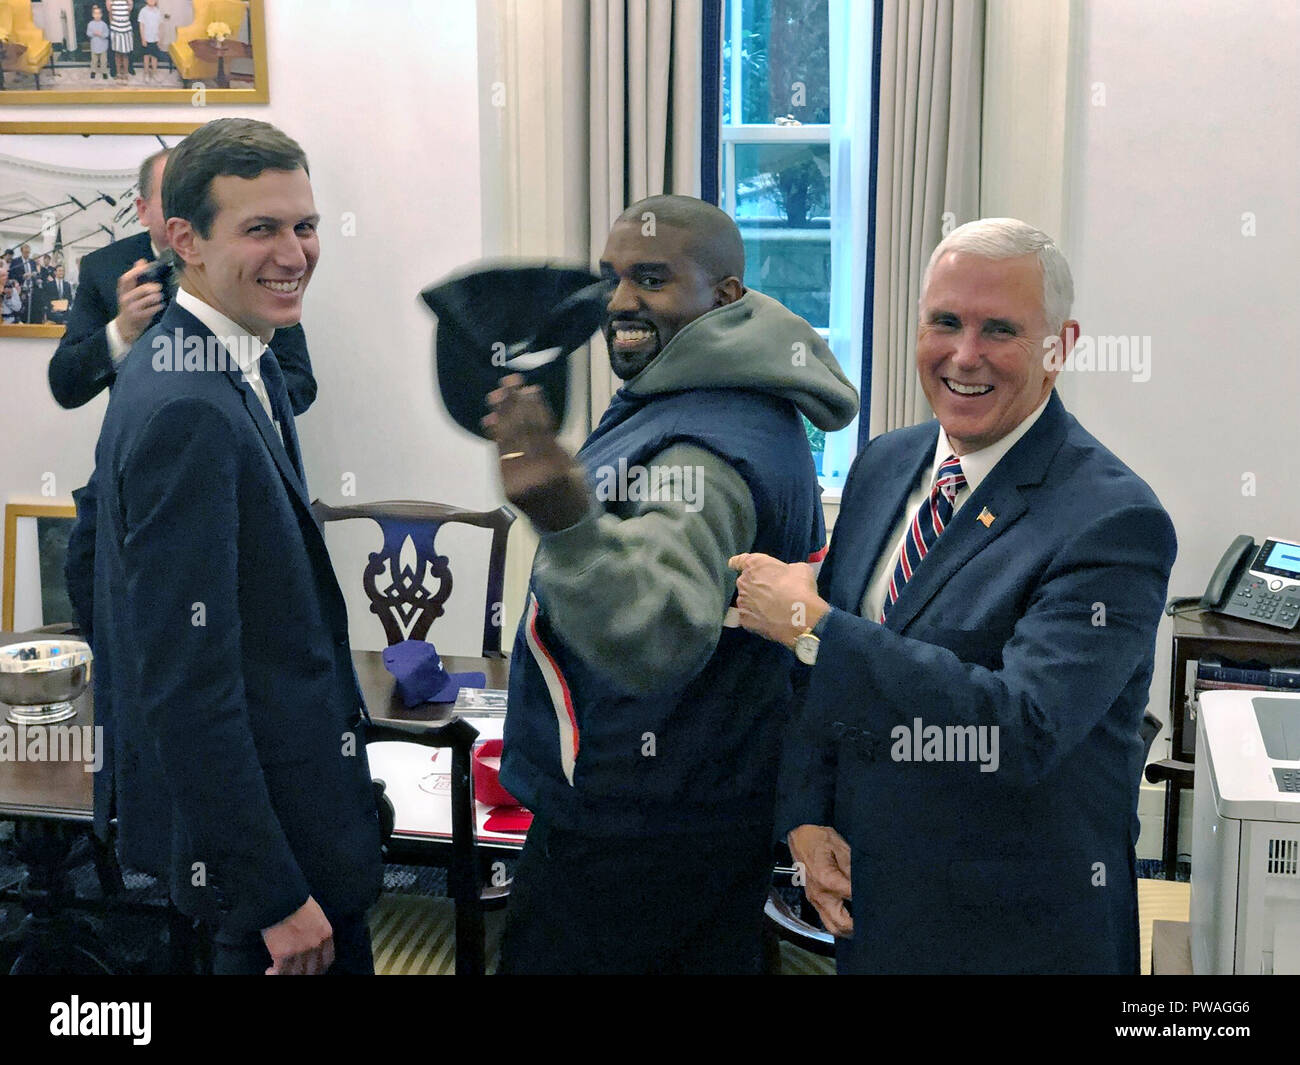 U.S Vice President Mike Pence laughs as he jokes with performer Kanye West, center, as Presidential adviser Jared Kushner, left, looks on in the outer Oval Office of the White House October 11, 2018 in Washington, DC. - Stock Image